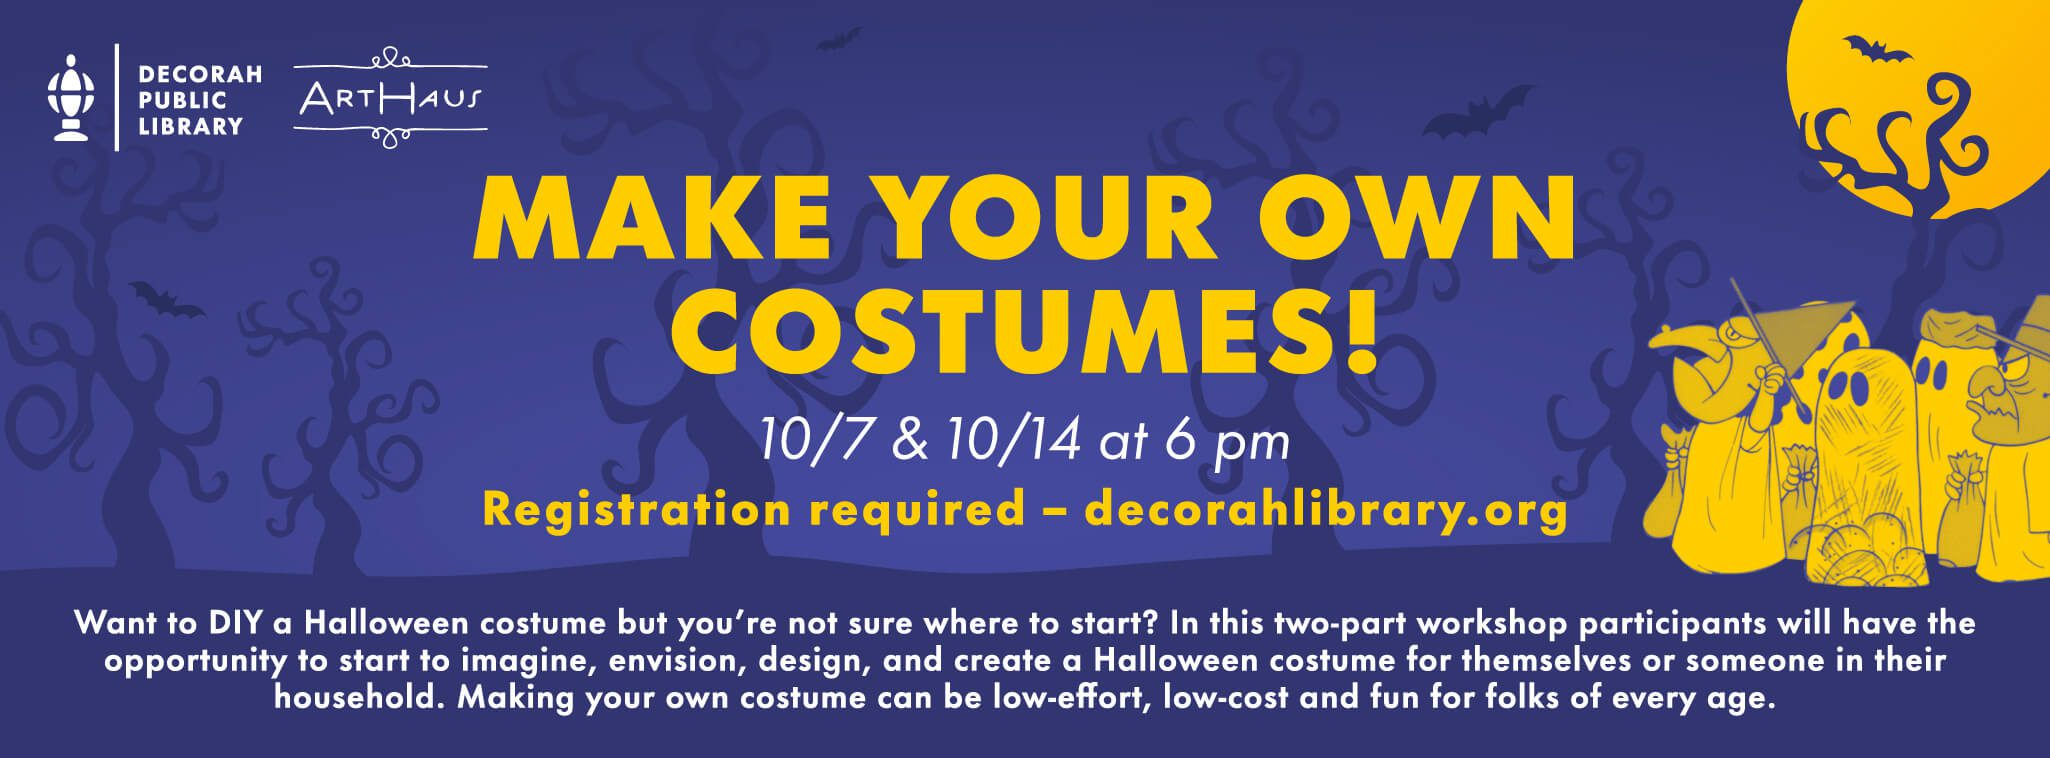 10/7 & 10/14: (both sessions) Make Your Own Costumes! decorative image